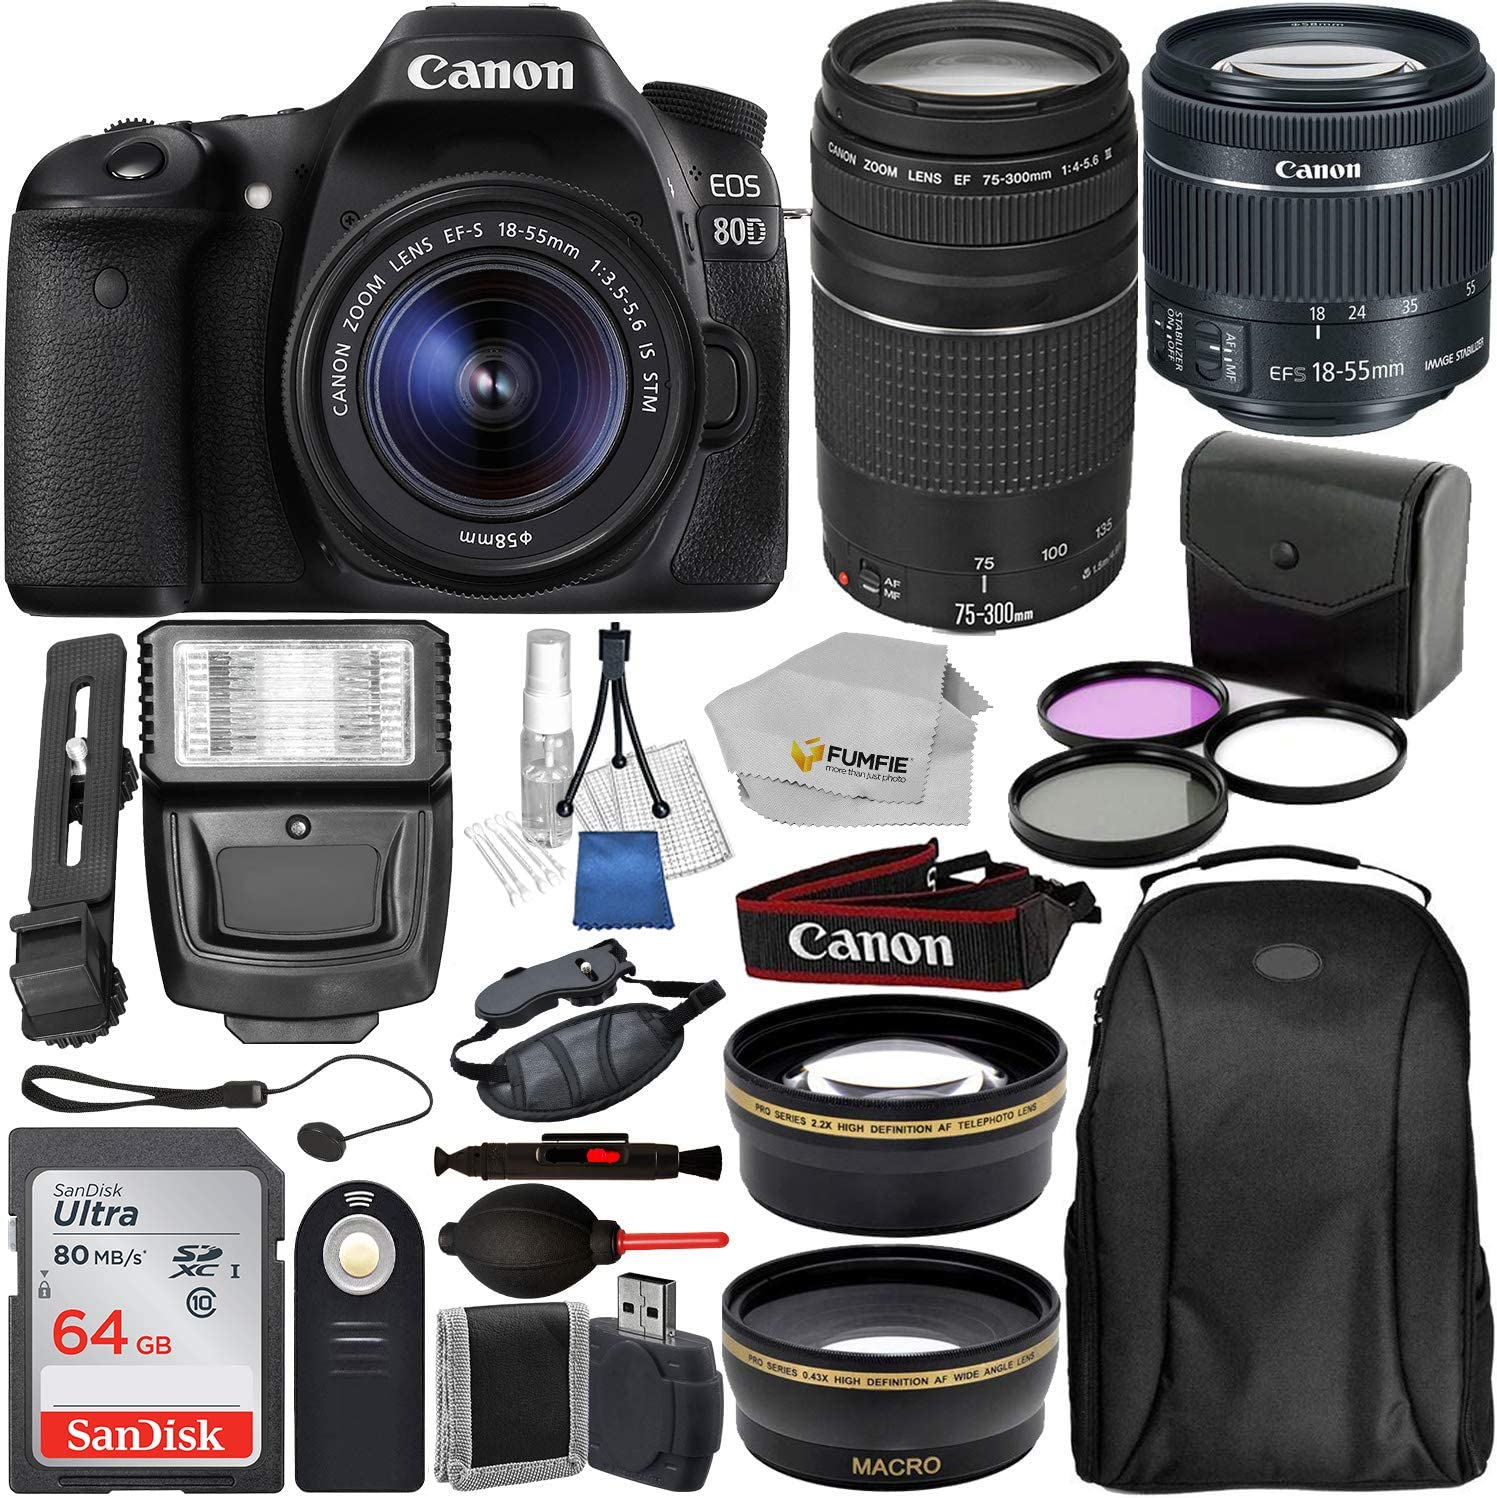 XT XTi Digital SLR Cameras XSi 67mm DM Optics High Resolution 3-piece Filter Set 70-200mm T2i T3i For The Canon 100mm XS 70-300mm For Any Of These Canon EOS T1i 17-85mm 18-135mm T3 UV, Fluorescent, Polarizer